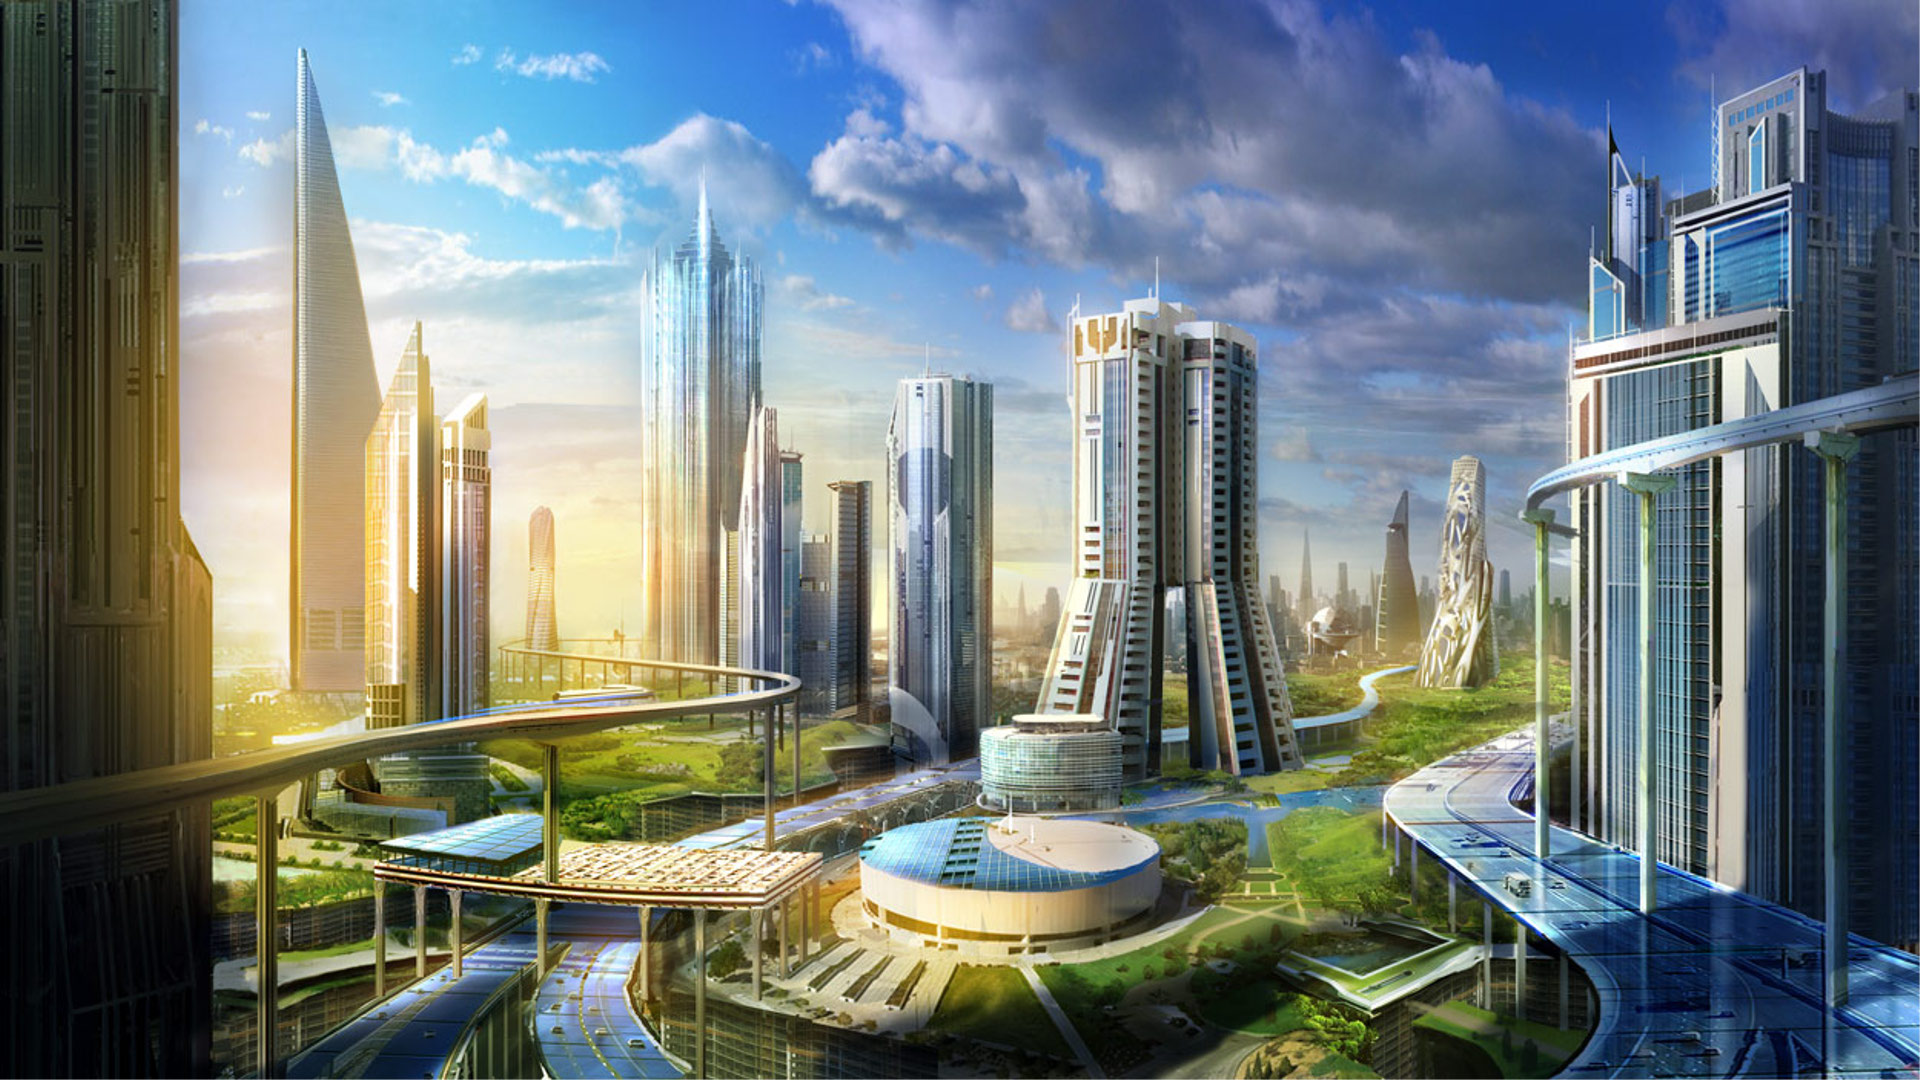 What will cities in the future look like?